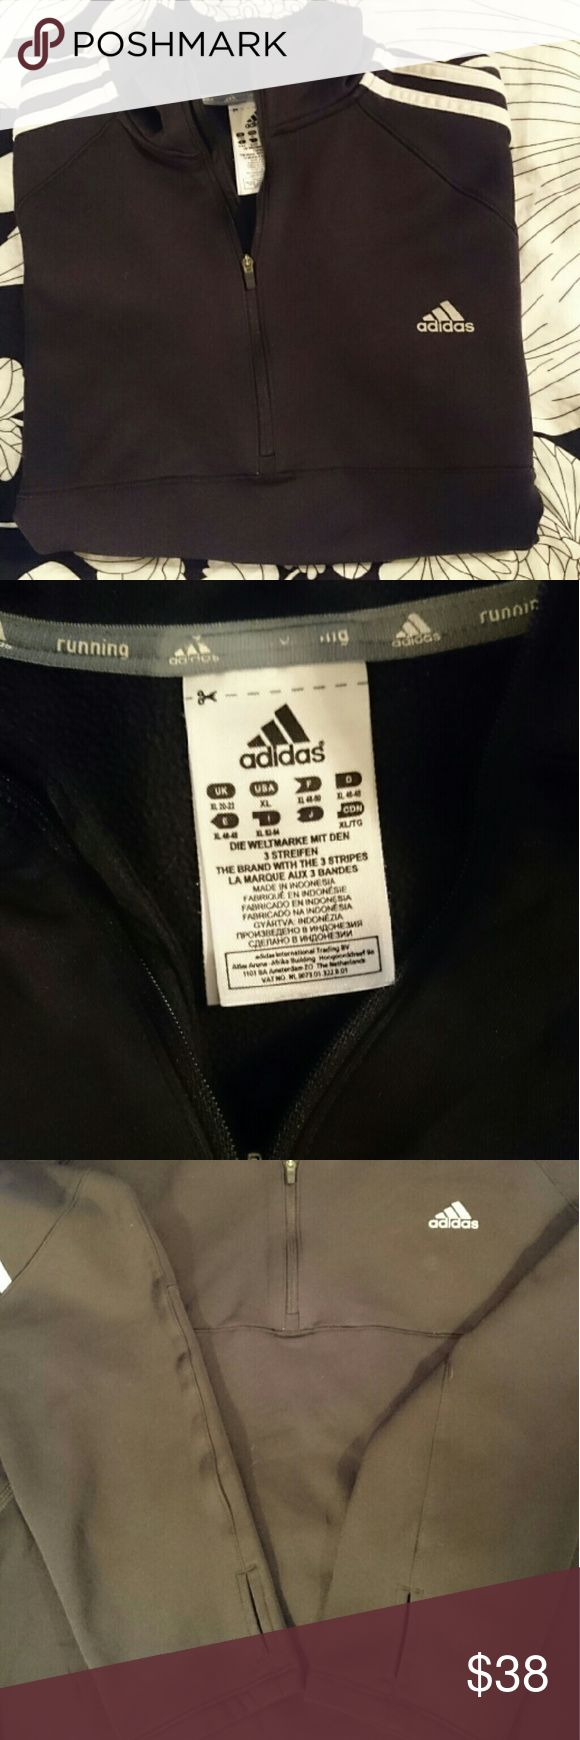 Adidas Response Half Zip Running Jacket Adidas Response Half Zip Running Pullover Jacket. PERFECT CONDITION! Has thumbholes to keep sleeves in place, as seen in 3rd pic.  10% discount when bundled with another item! Adidas Tops Sweatshirts & Hoodies